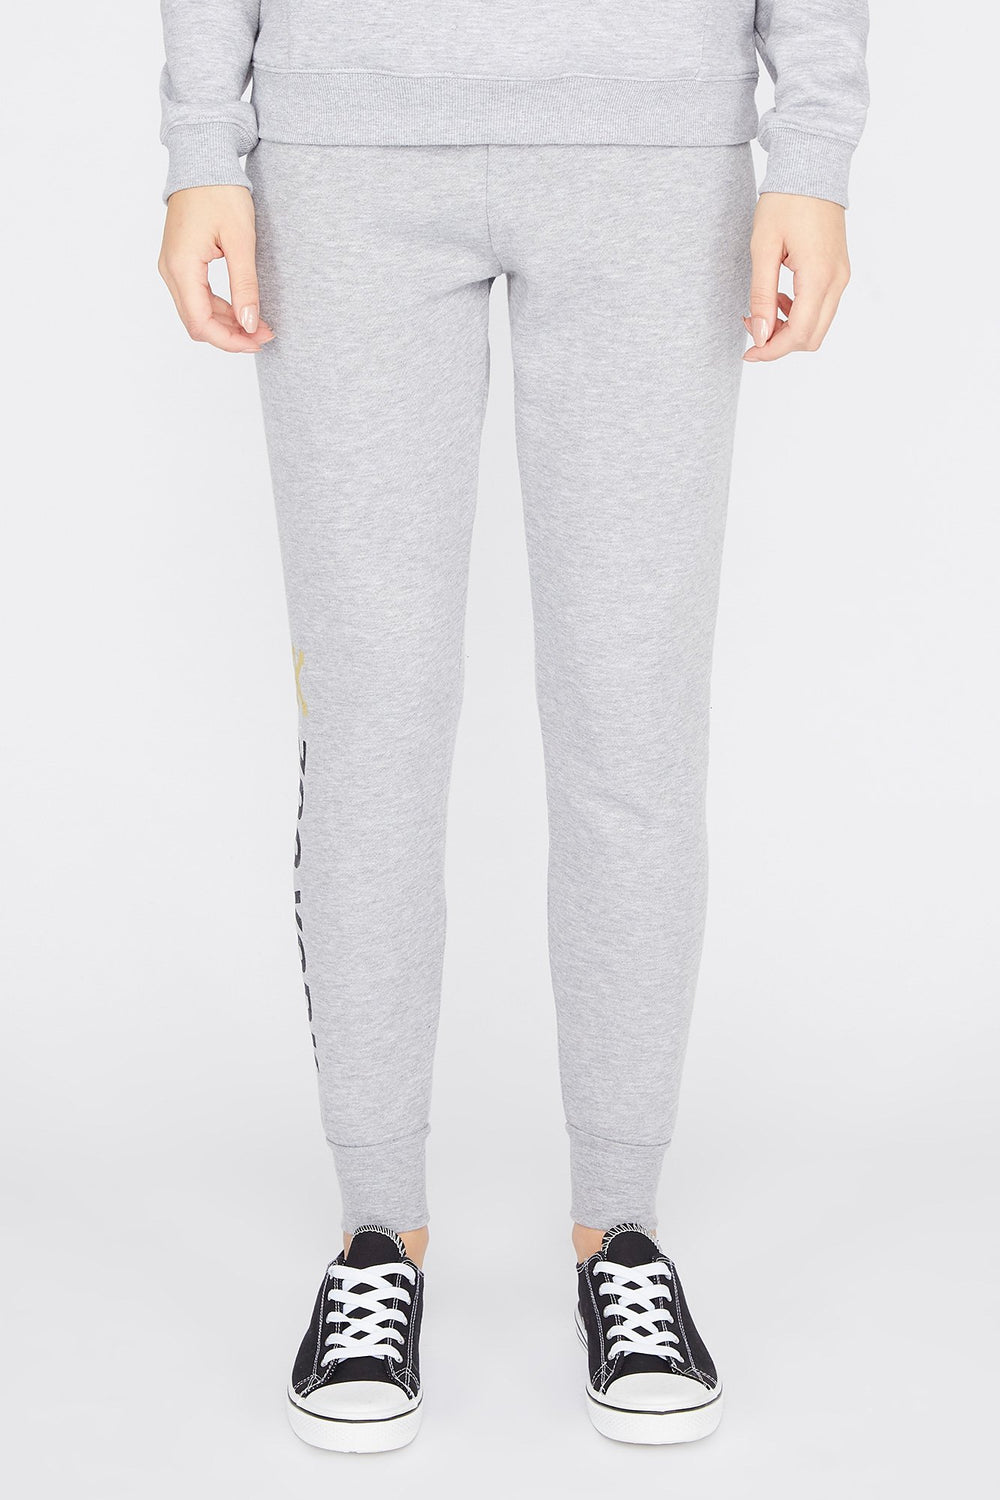 Zoo York Womens Fleece Joggers Heather Grey